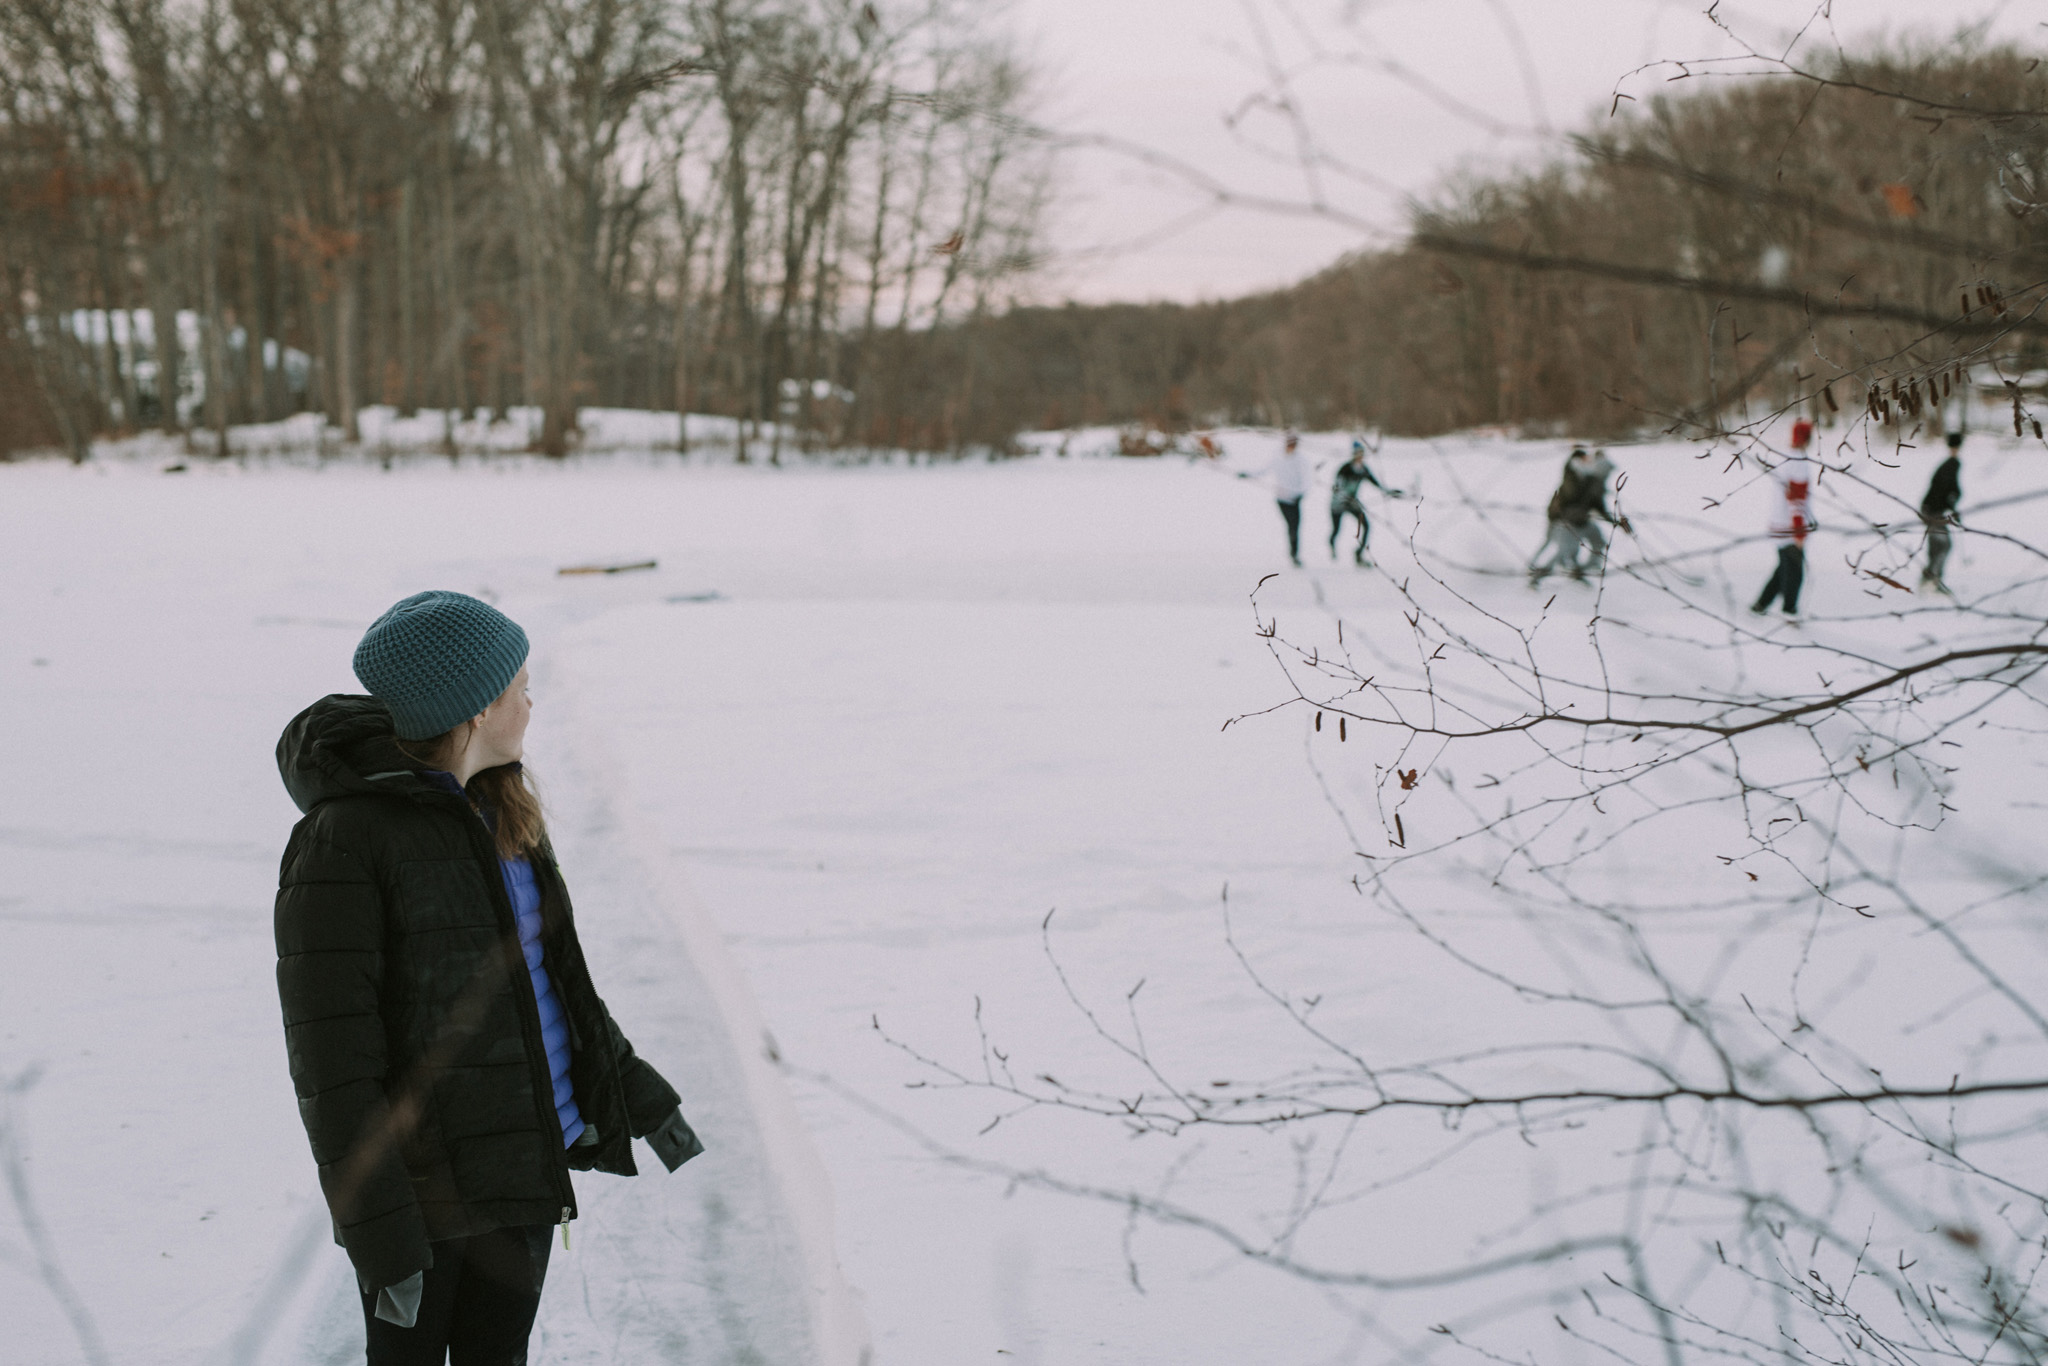 January 7: Cassidy and I took a drive to see if the lake that I often run by was frozen, and we found neighborhood kids playing hockey on it. It was perhaps the most New England moment of my life here to date. I loved it.